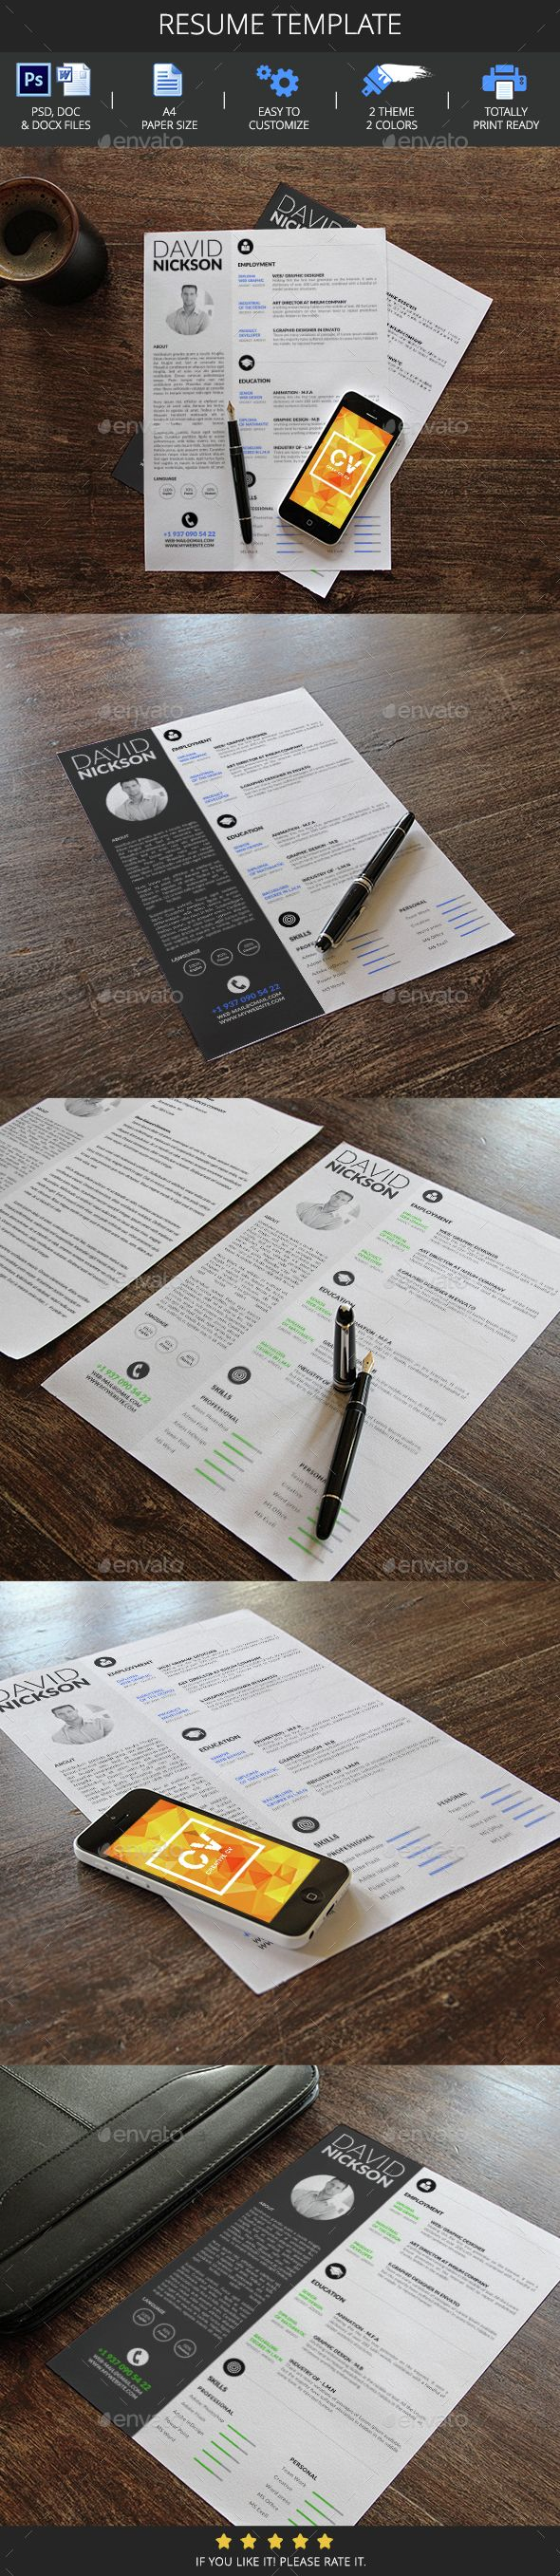 Resume Template PSD Download here httpgraphicrivernetitem 98